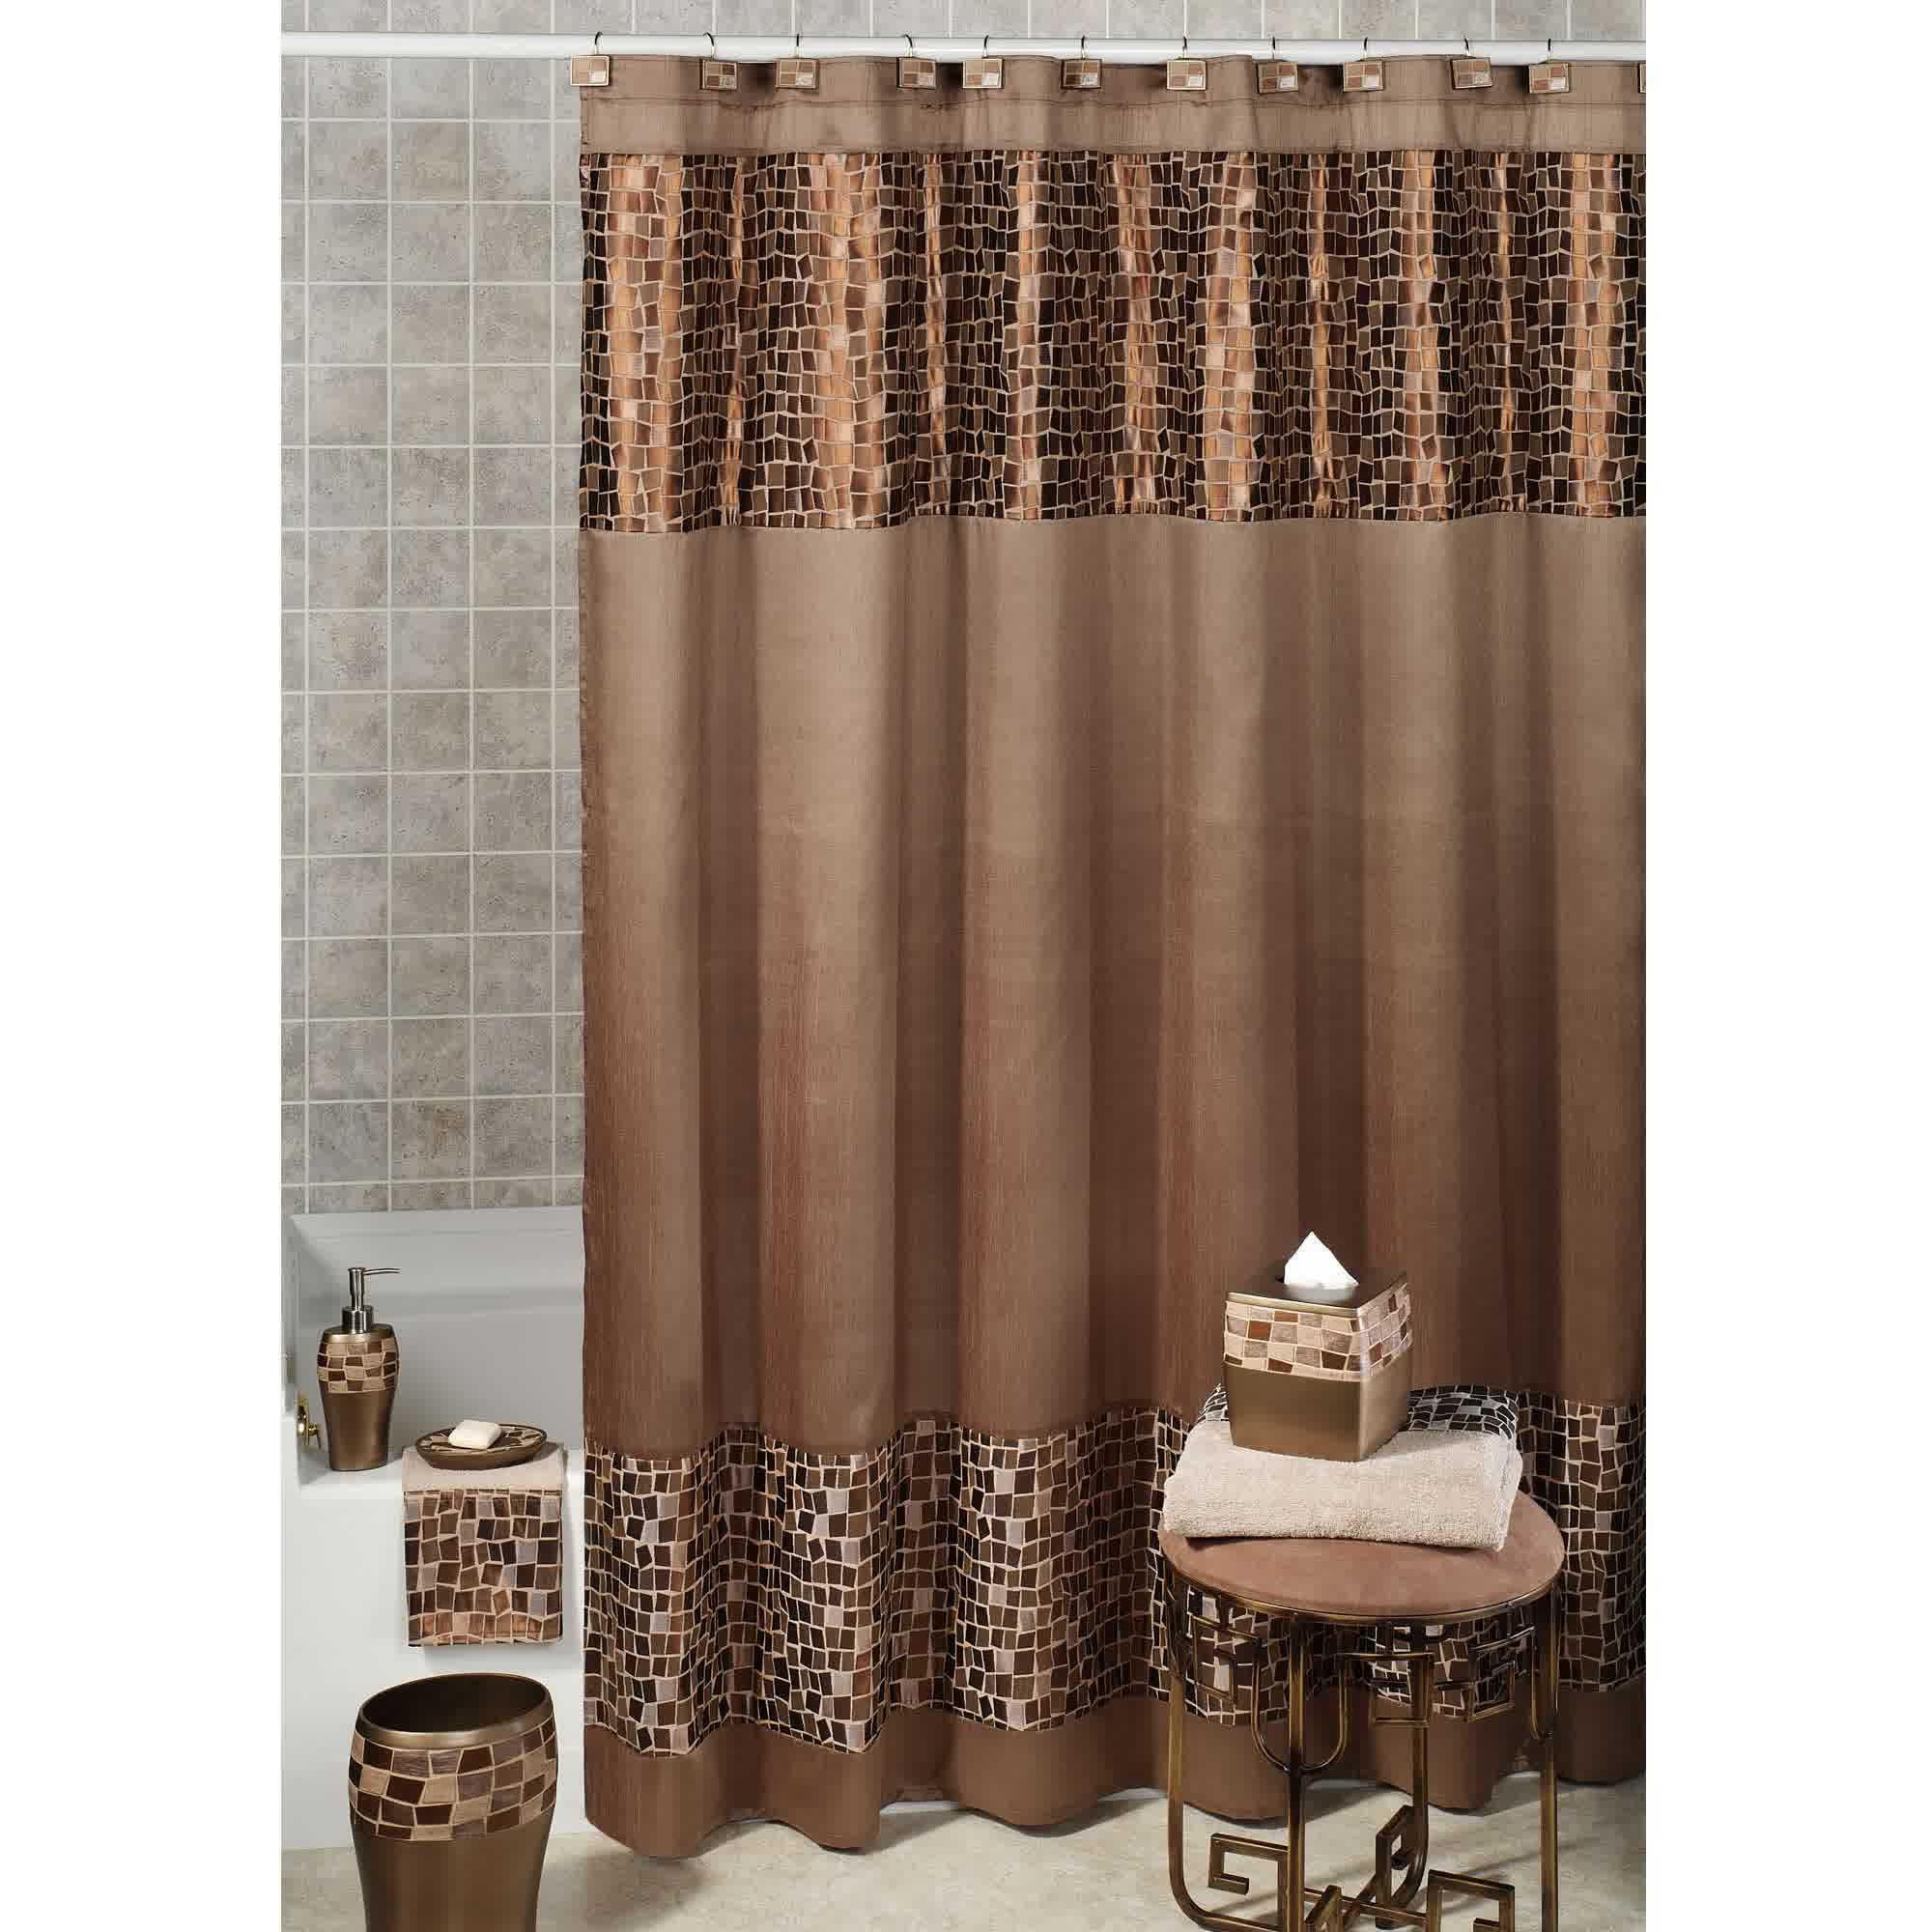 Curtains and Window Treatments | 24 Inch Tier Curtains | Kohls Drapes